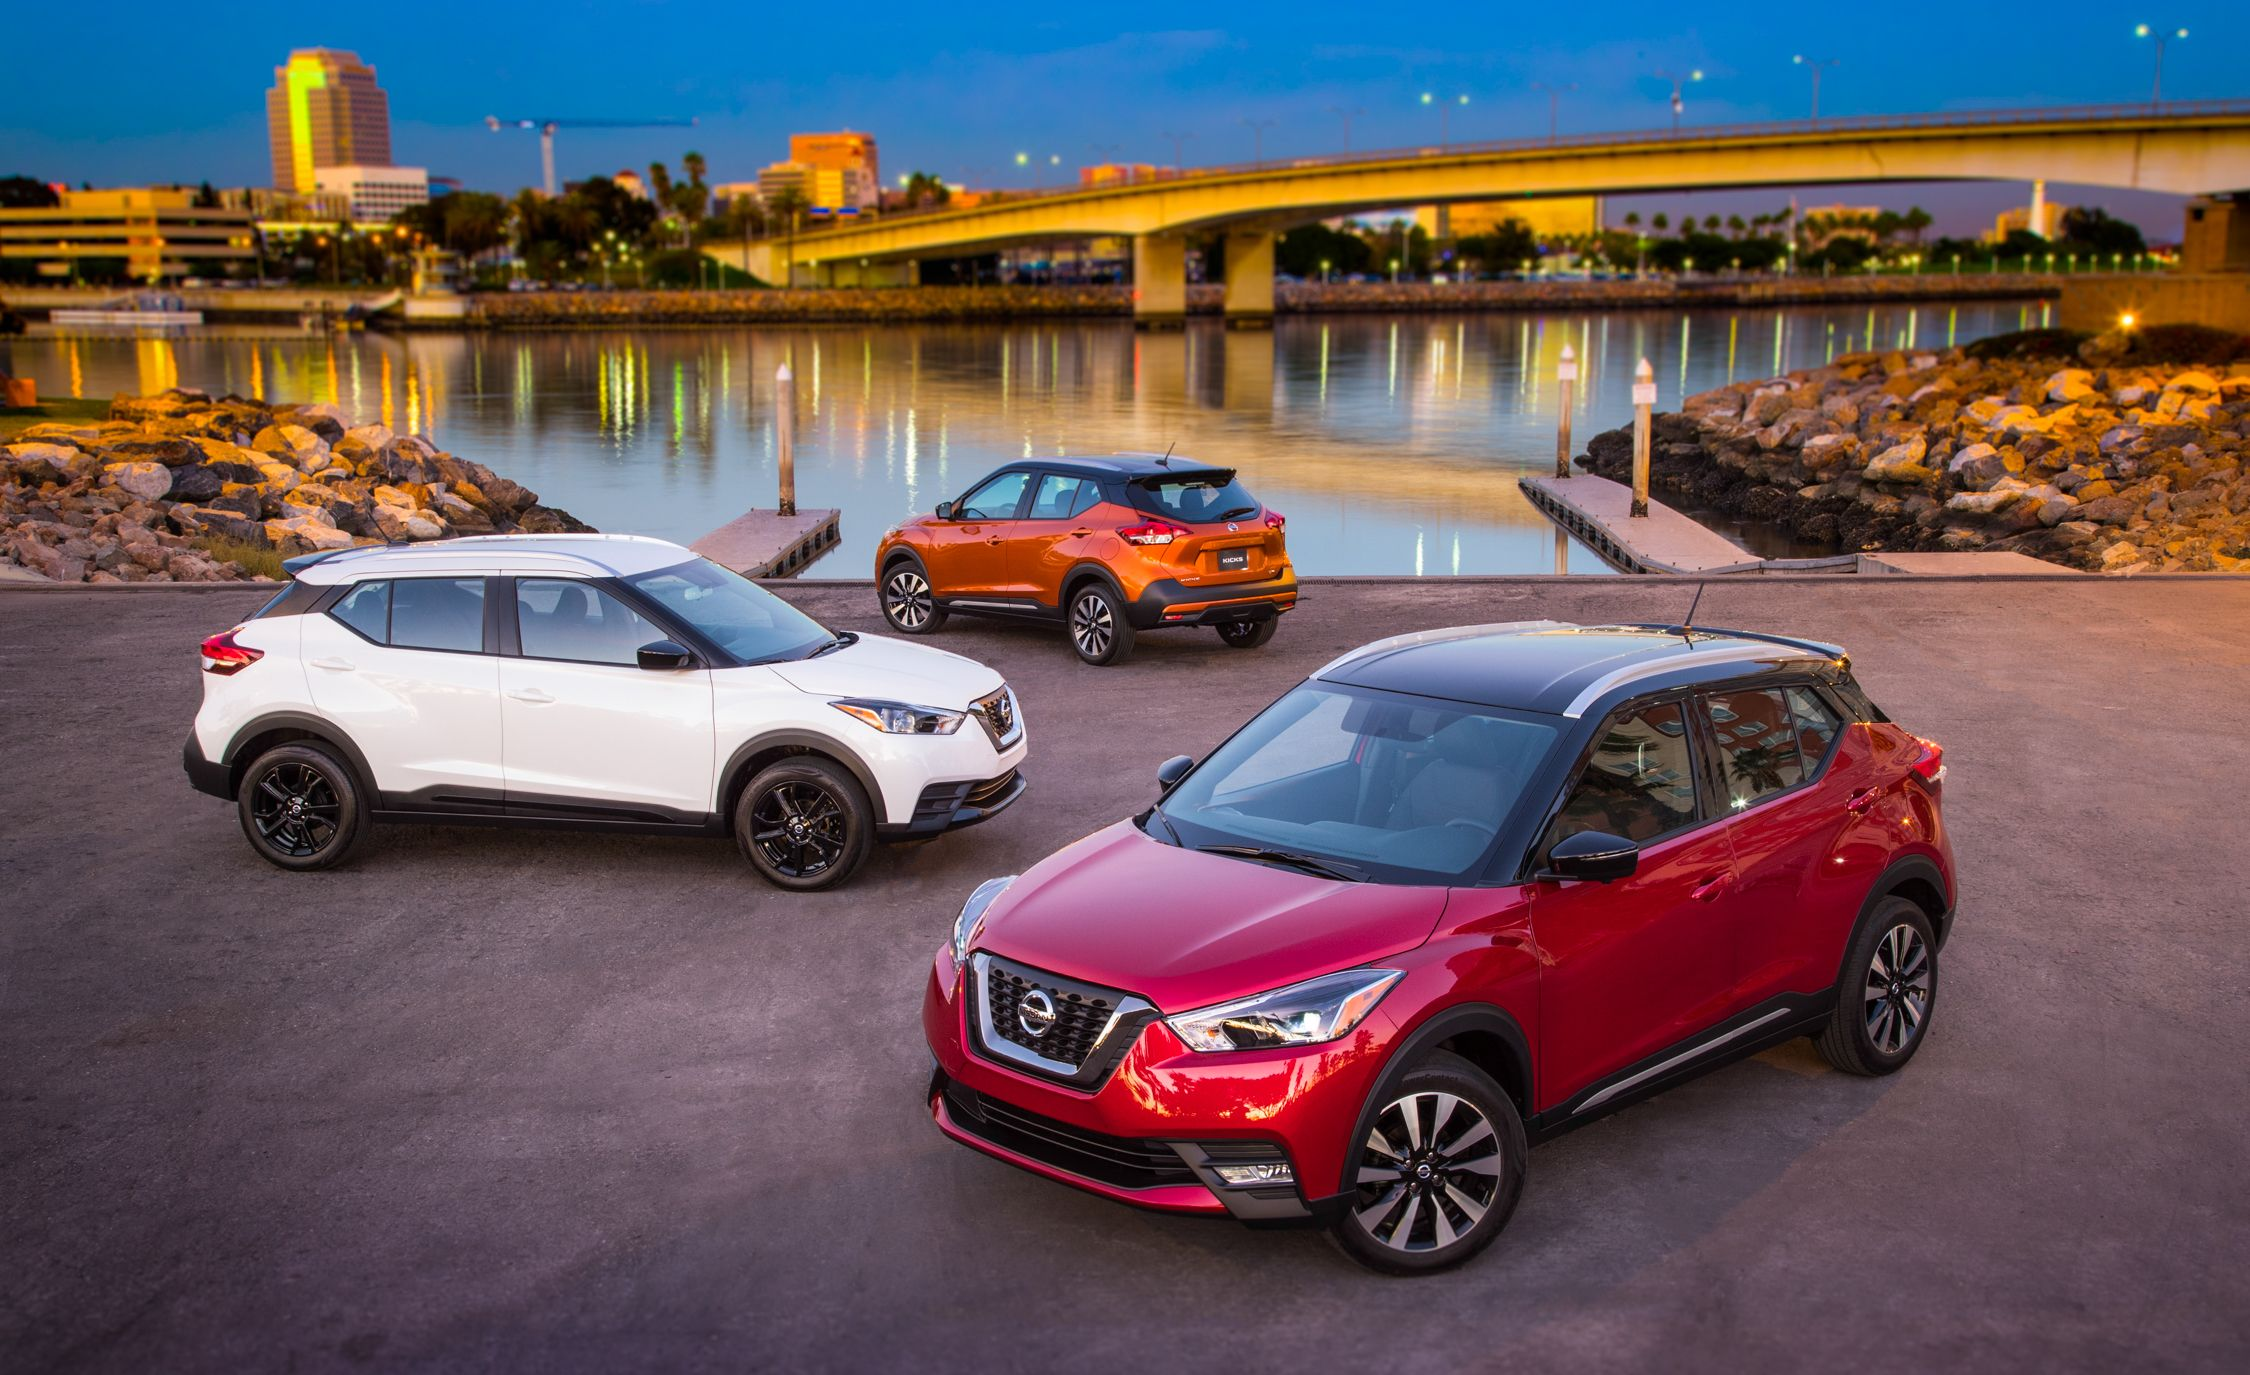 Every Subcompact Crossover Suv Ranked From Worst To Best Flipbook Car And Driver